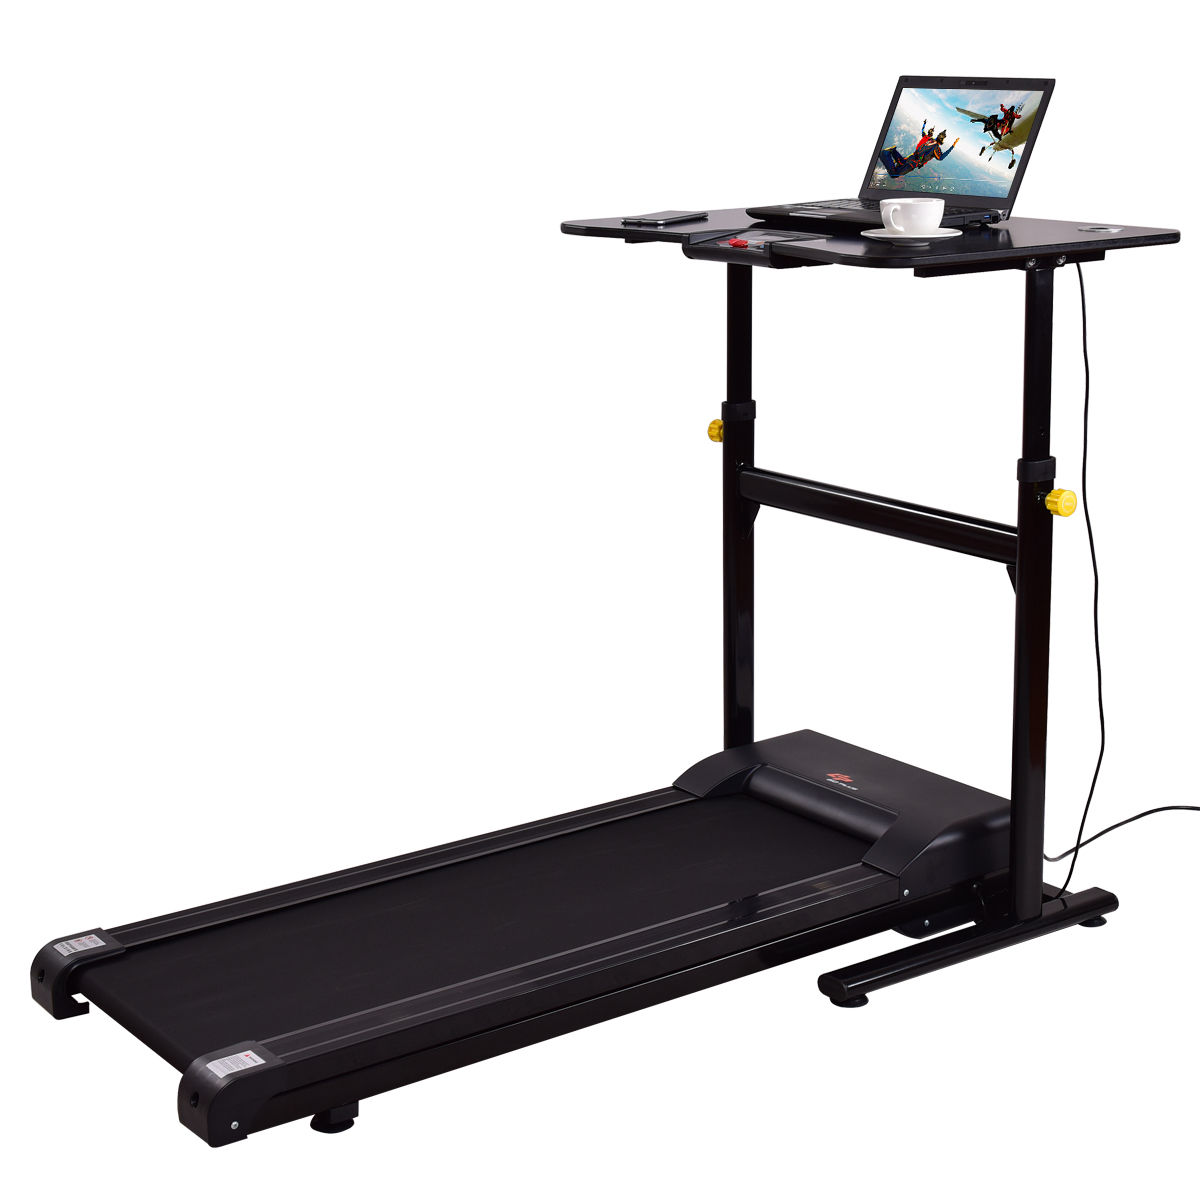 update desk this discontinued inmovement treadmillreviews net reviews review treadmill been has